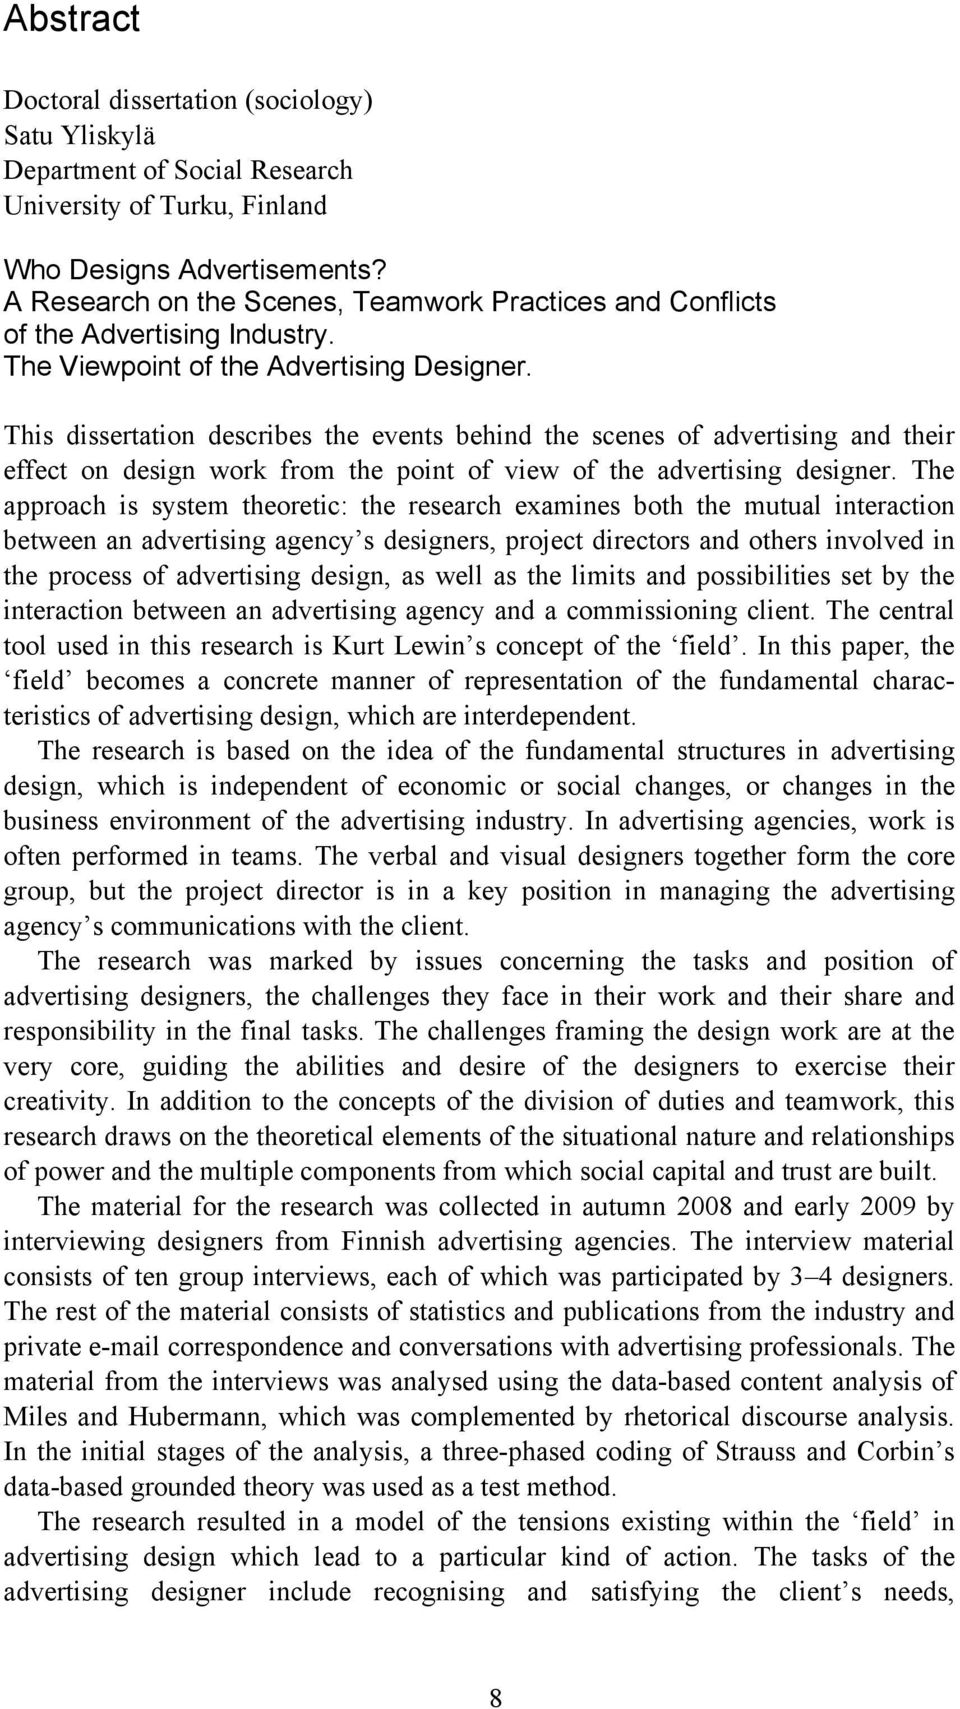 This dissertation describes the events behind the scenes of advertising and their effect on design work from the point of view of the advertising designer.